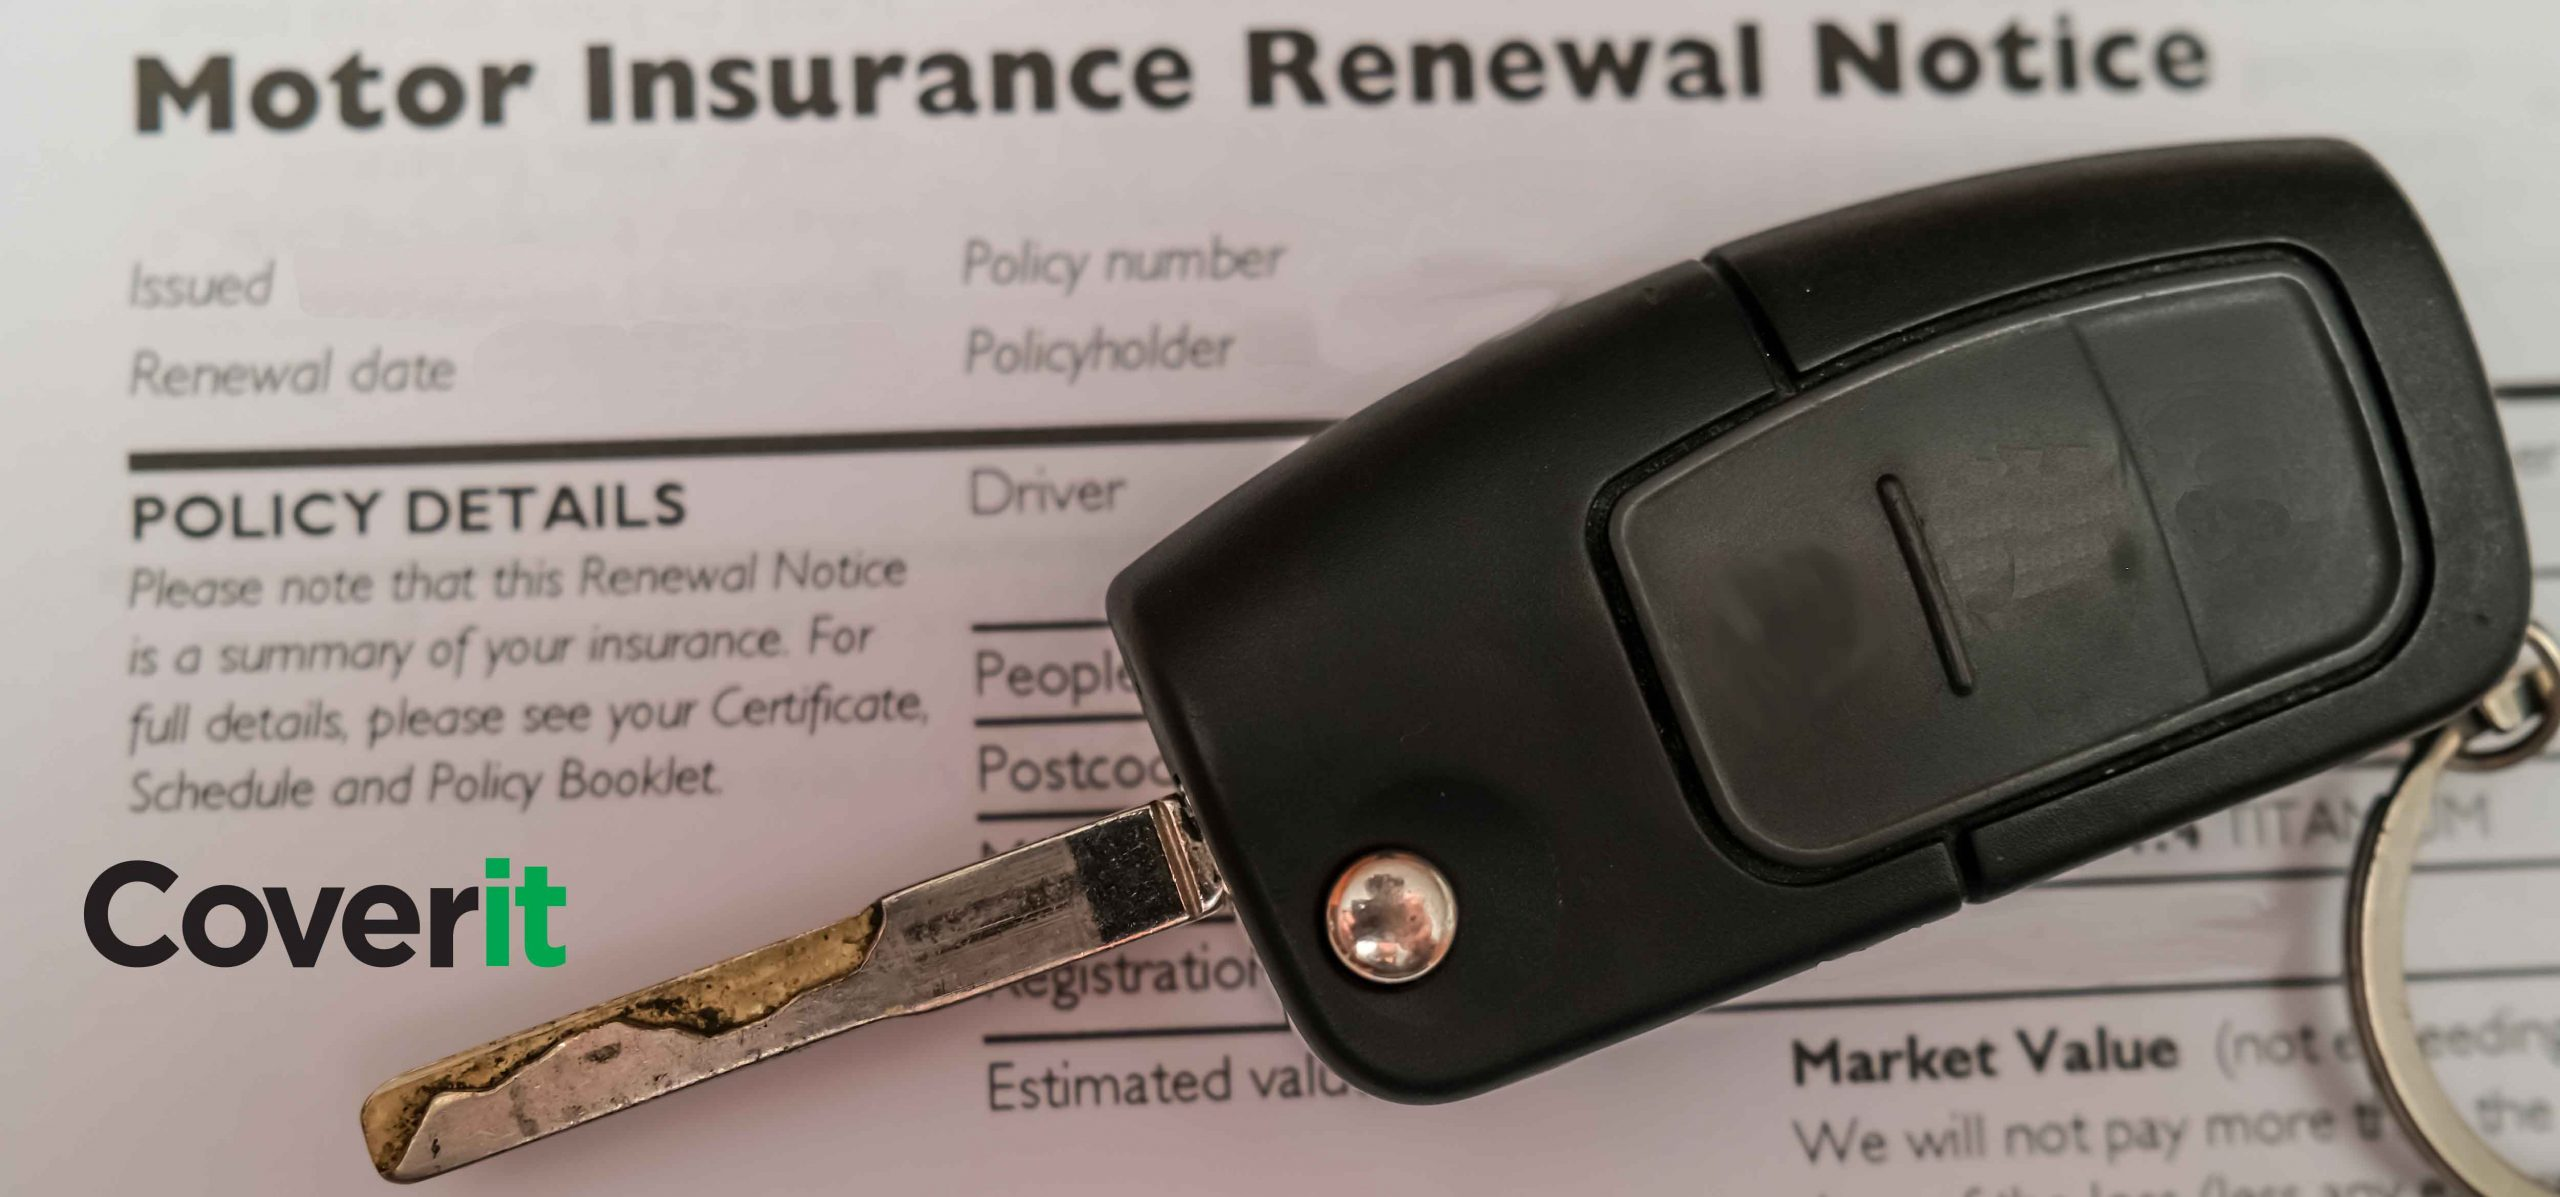 Motor Insurance Renewal, Motor vehicle quote, car insurance quote,